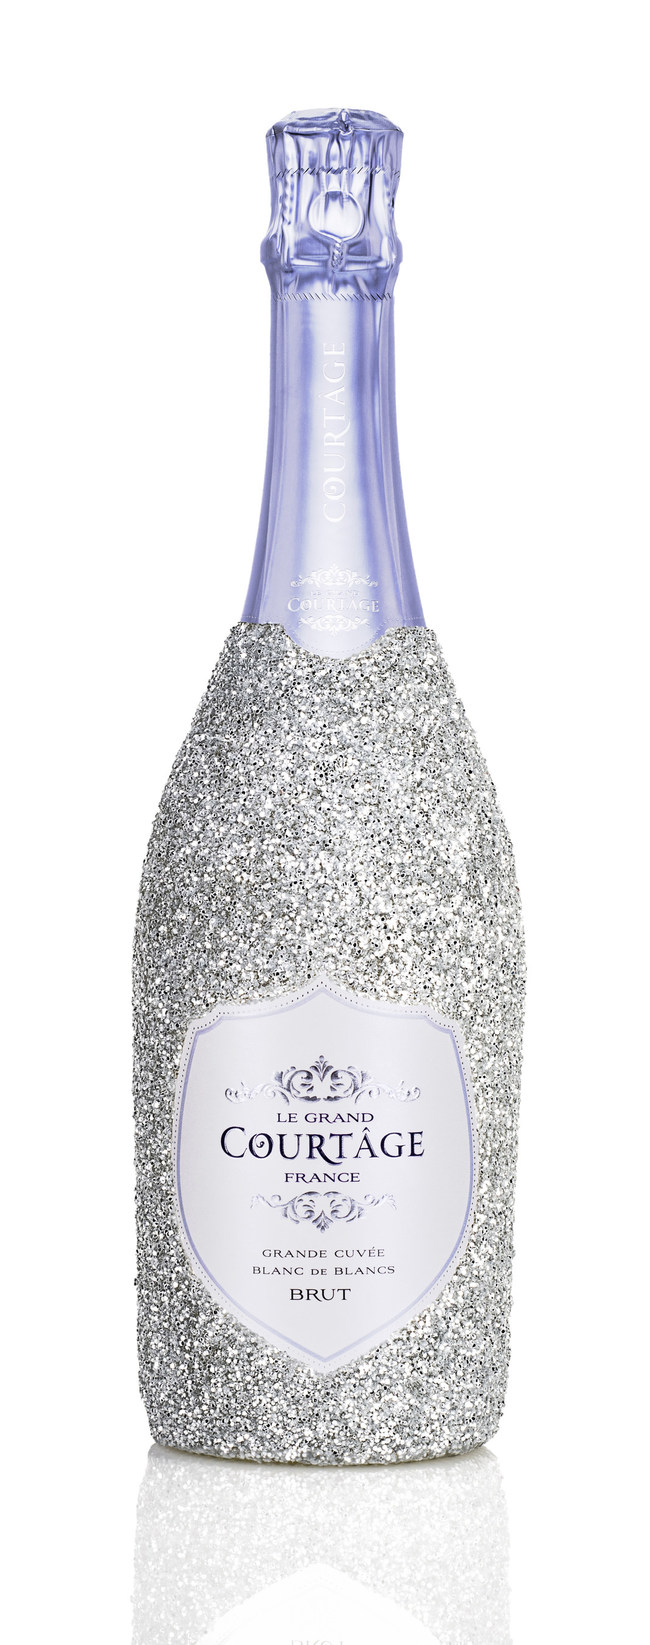 Le Grand Courtâge Bedazzled Blanc de Blancs Brut